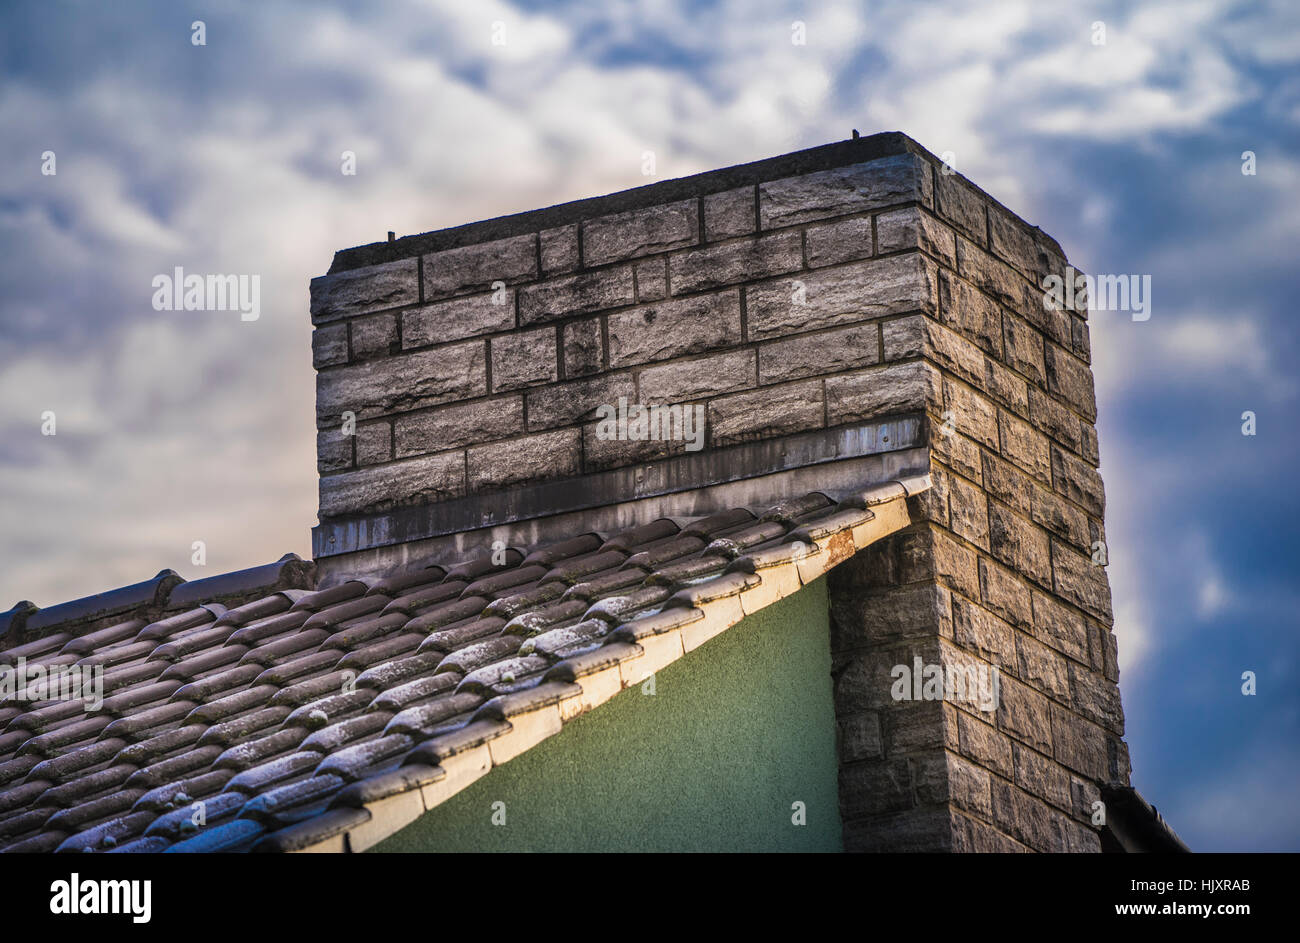 Chimney closeup in front of a cloudy sky - Stock Image